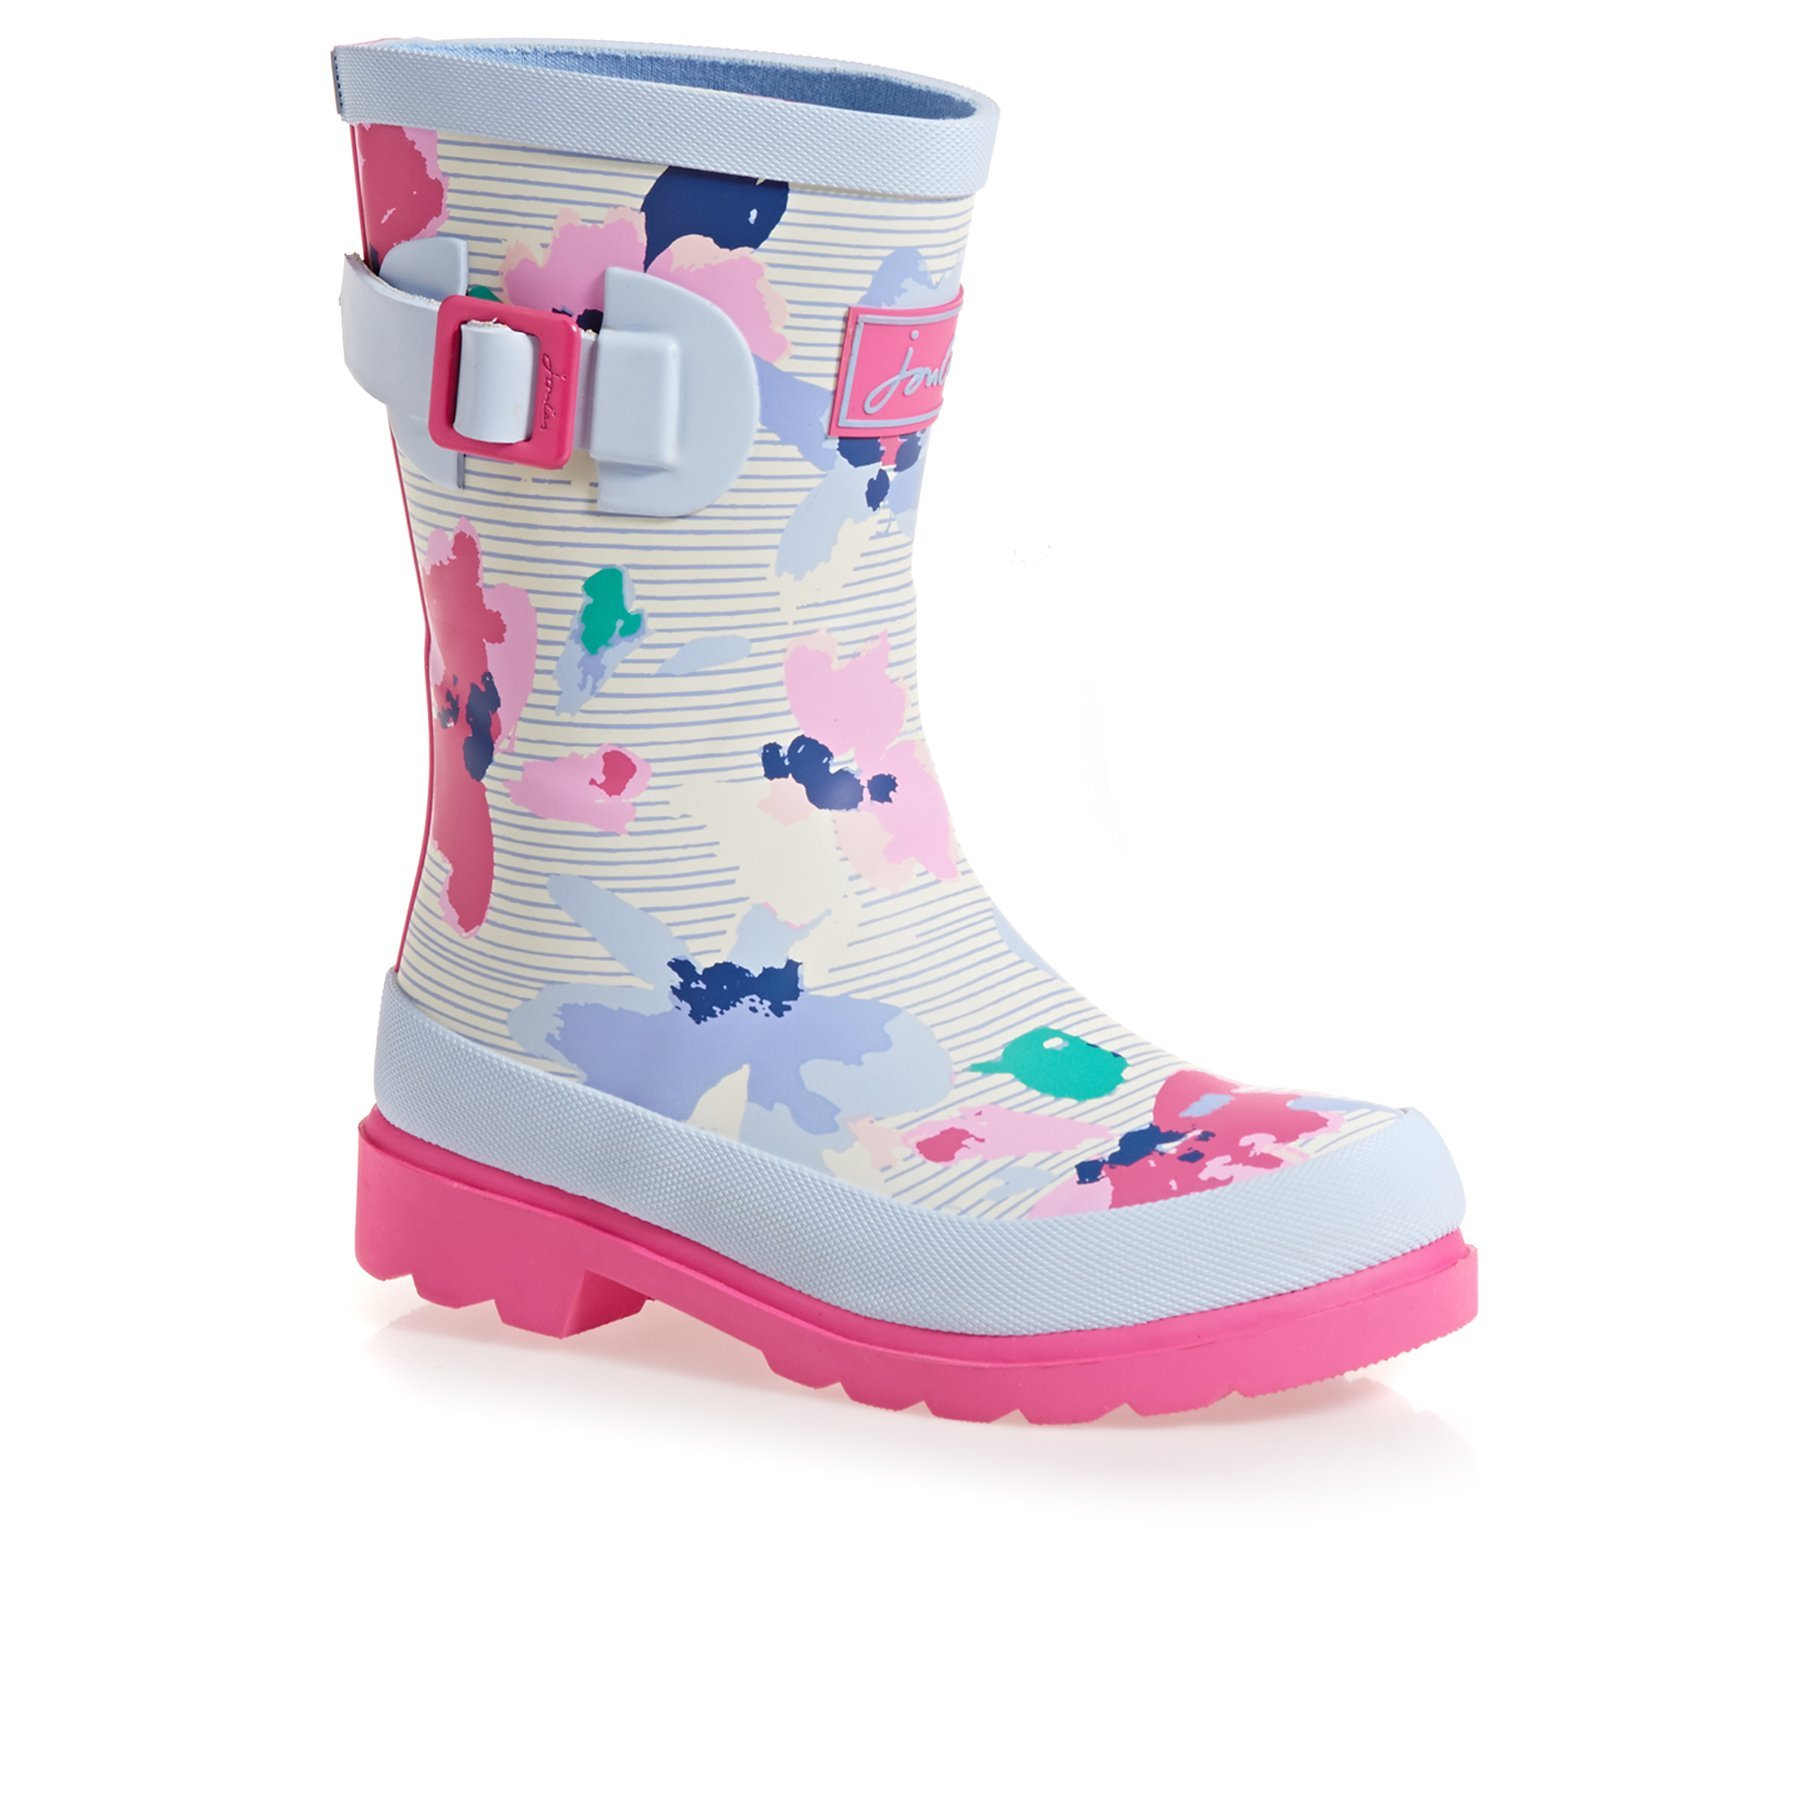 Joules Yjnrgirlswly Boots 11 M US Little Kid Lily Pond Stripe